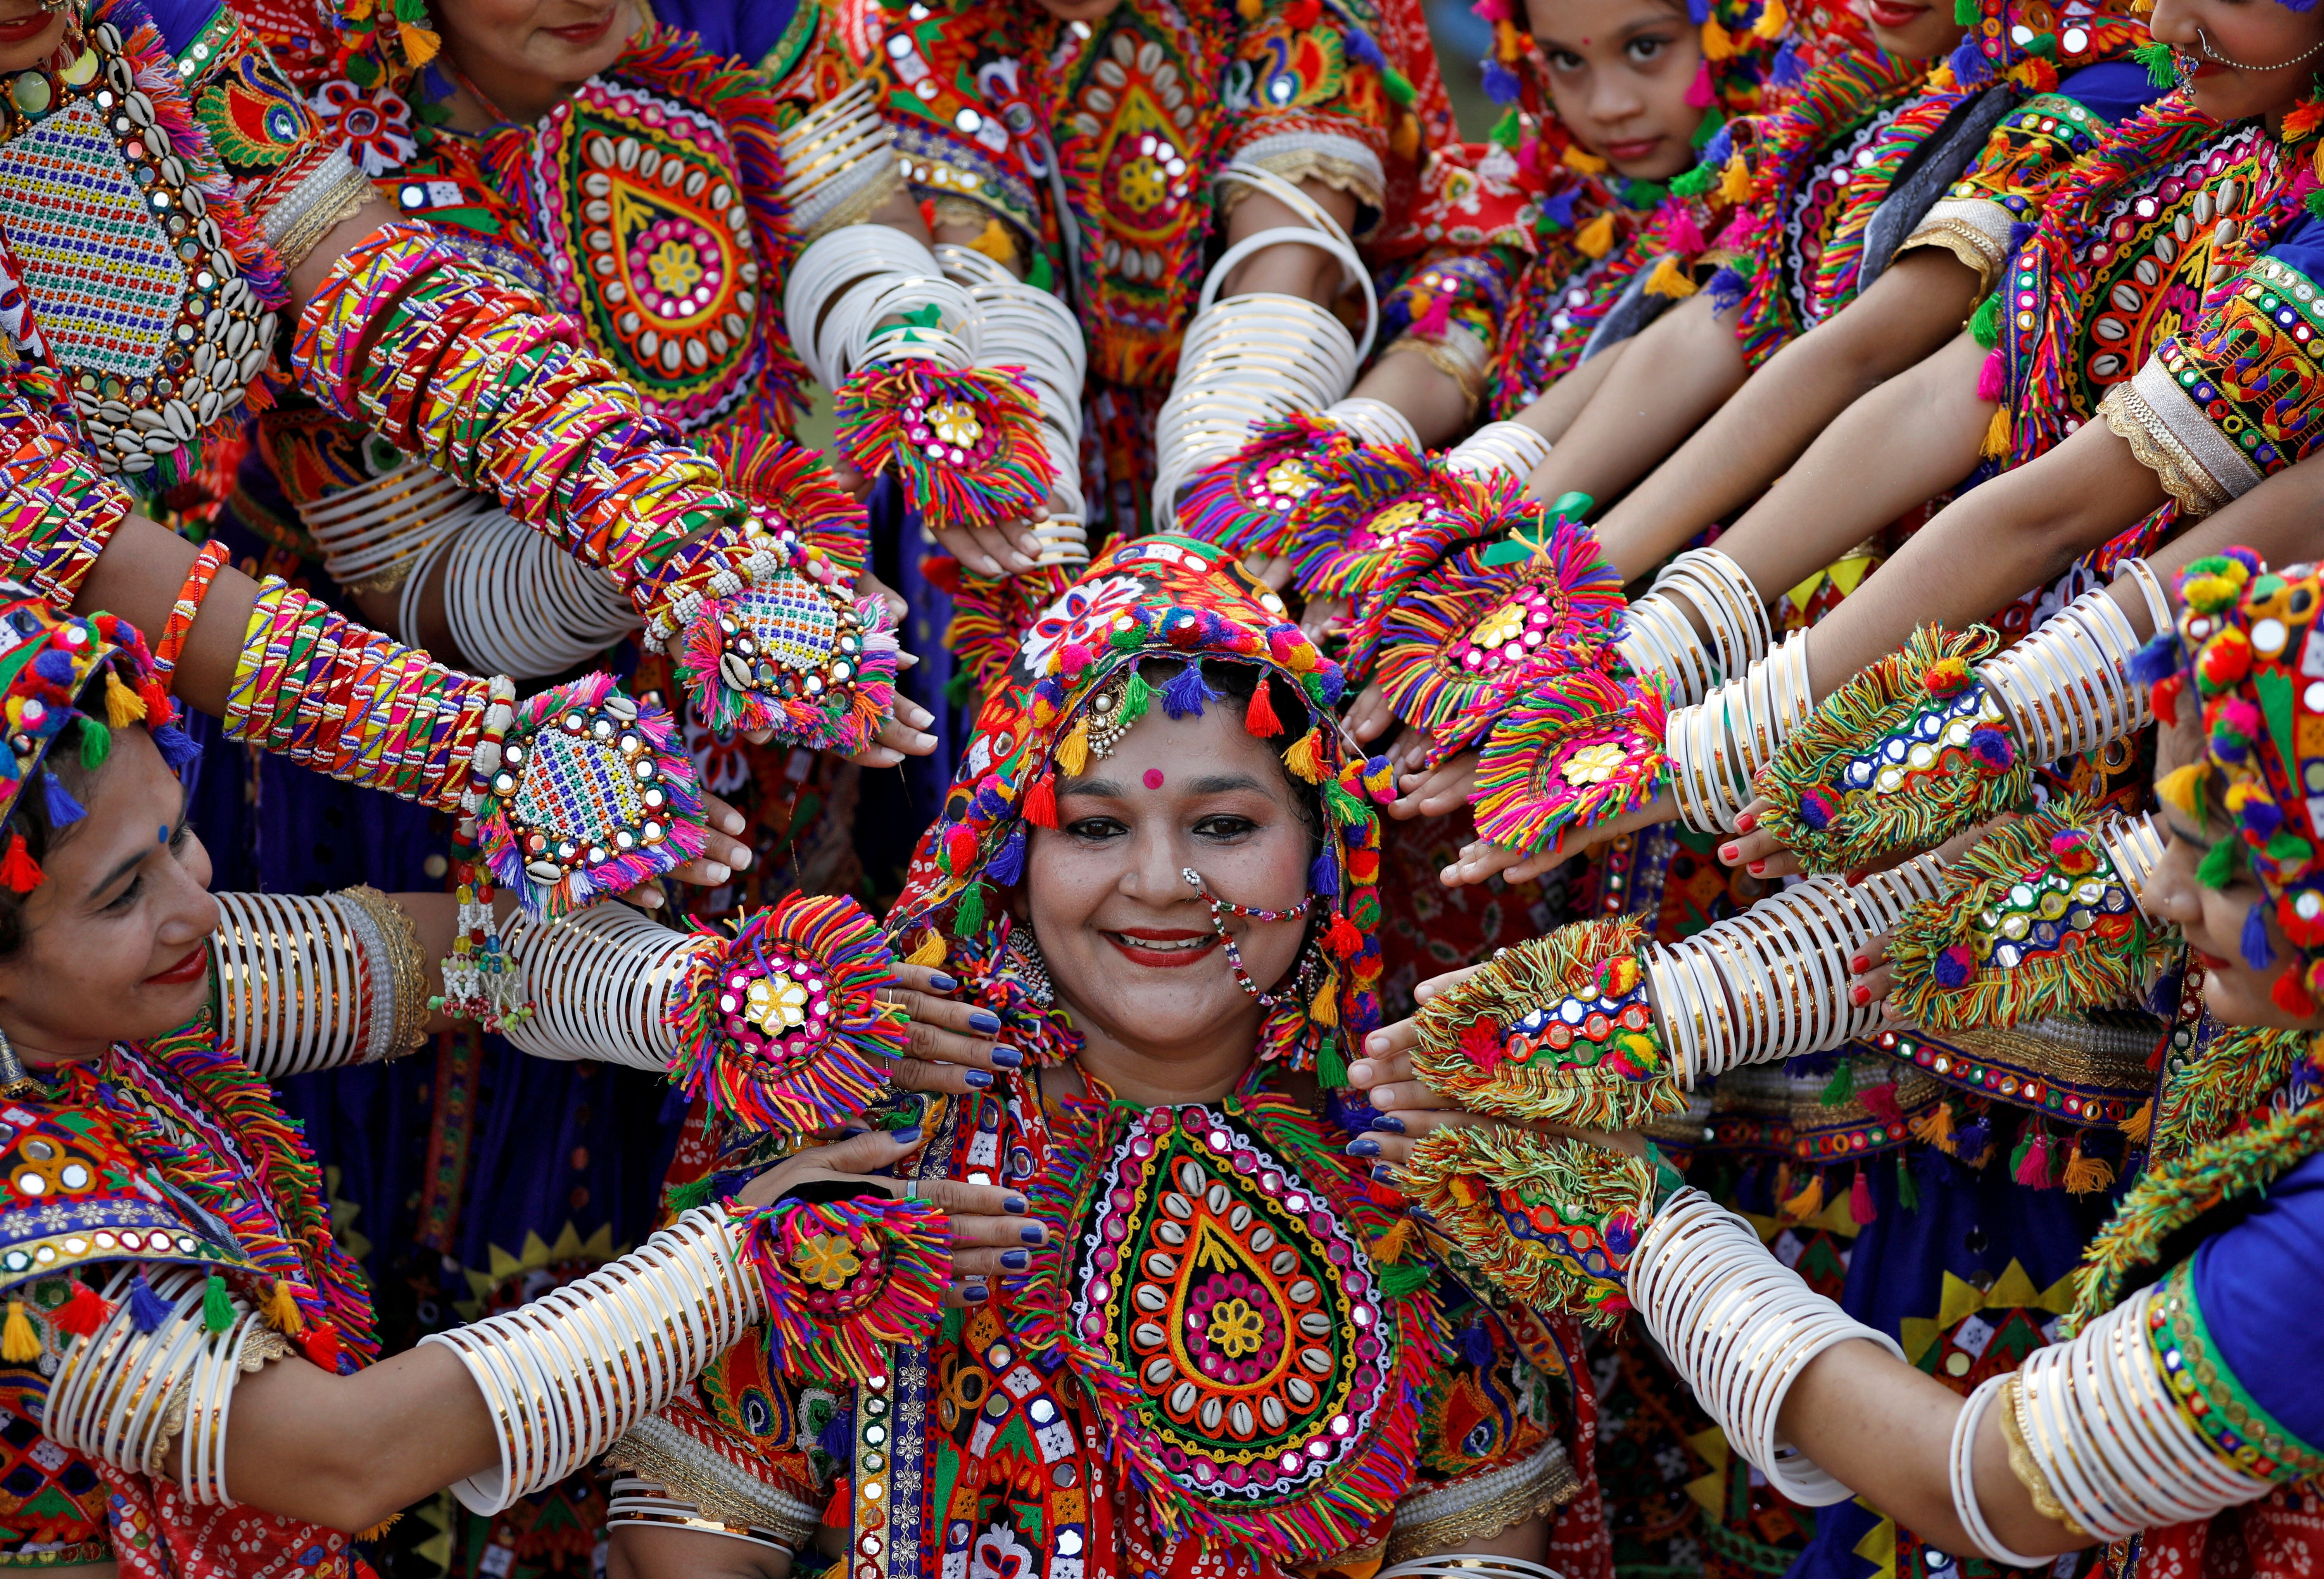 Participants dressed in traditional attire pose at rehearsals for Garba, a folk dance, in preparations for the Navratri, a fe